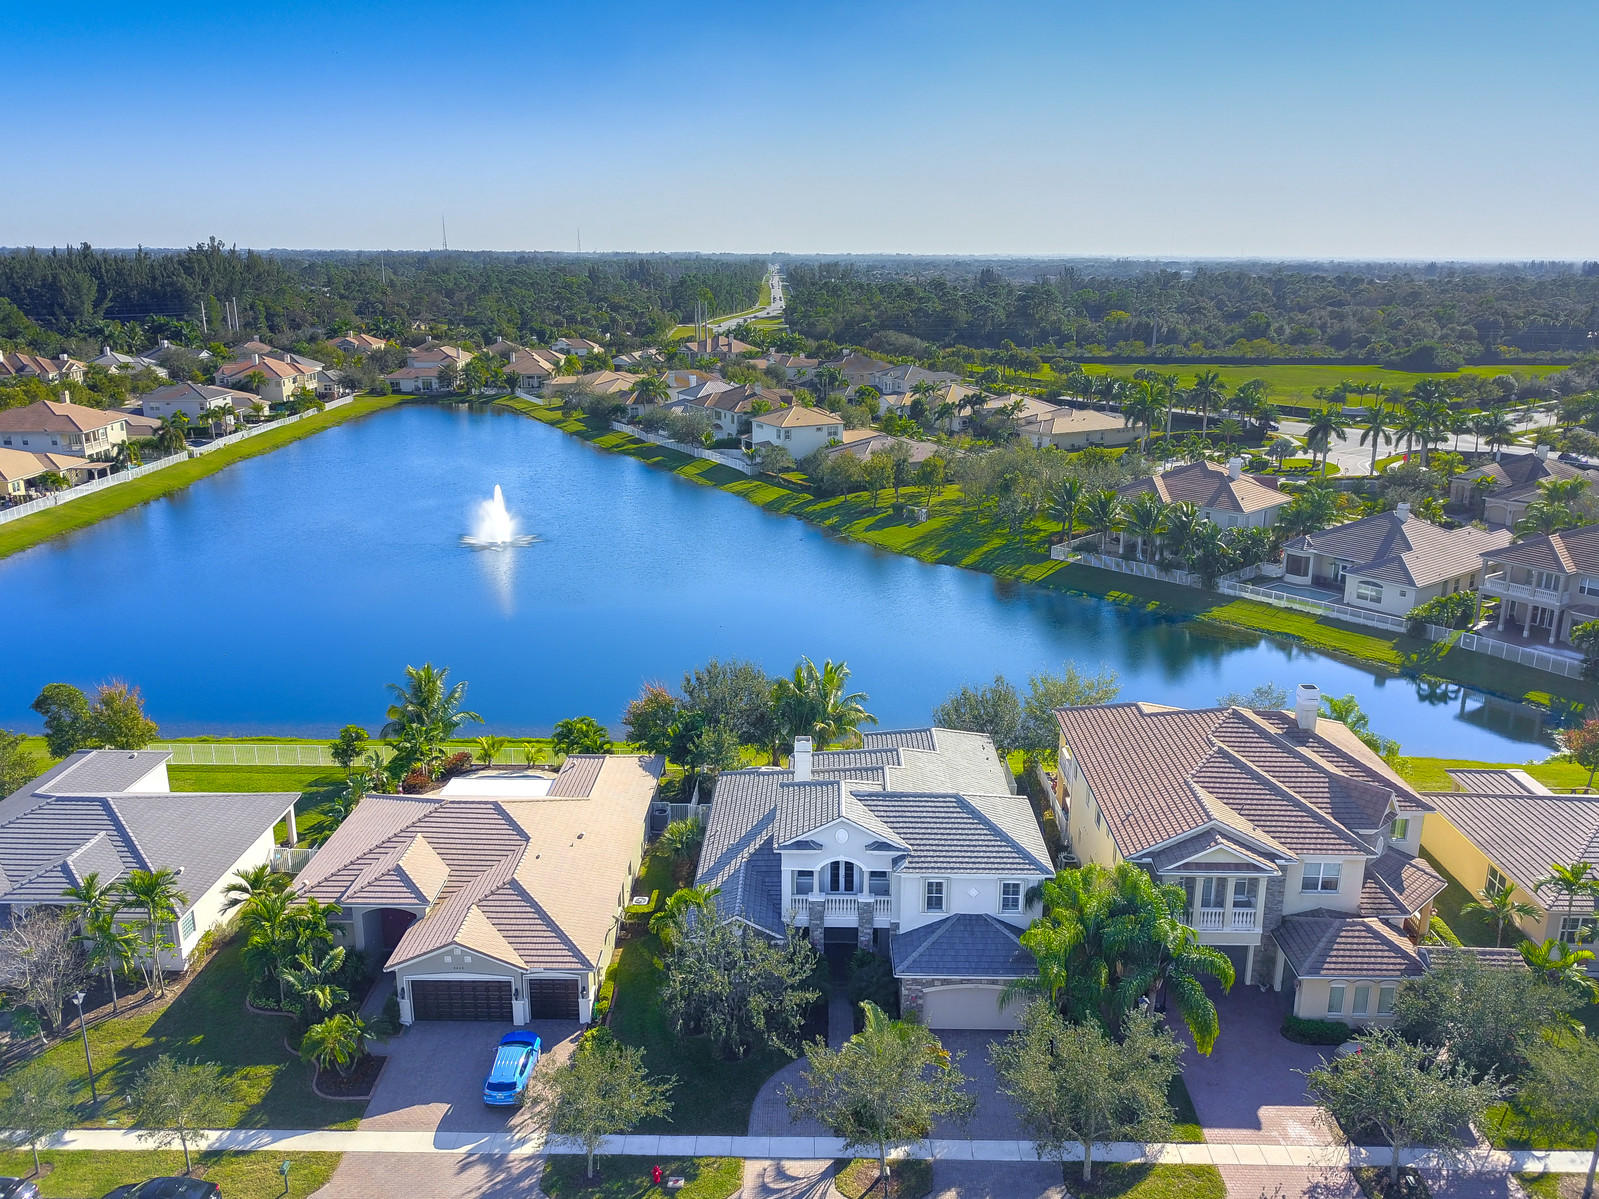 GREENWOOD MANOR ROYAL PALM BEACH REAL ESTATE